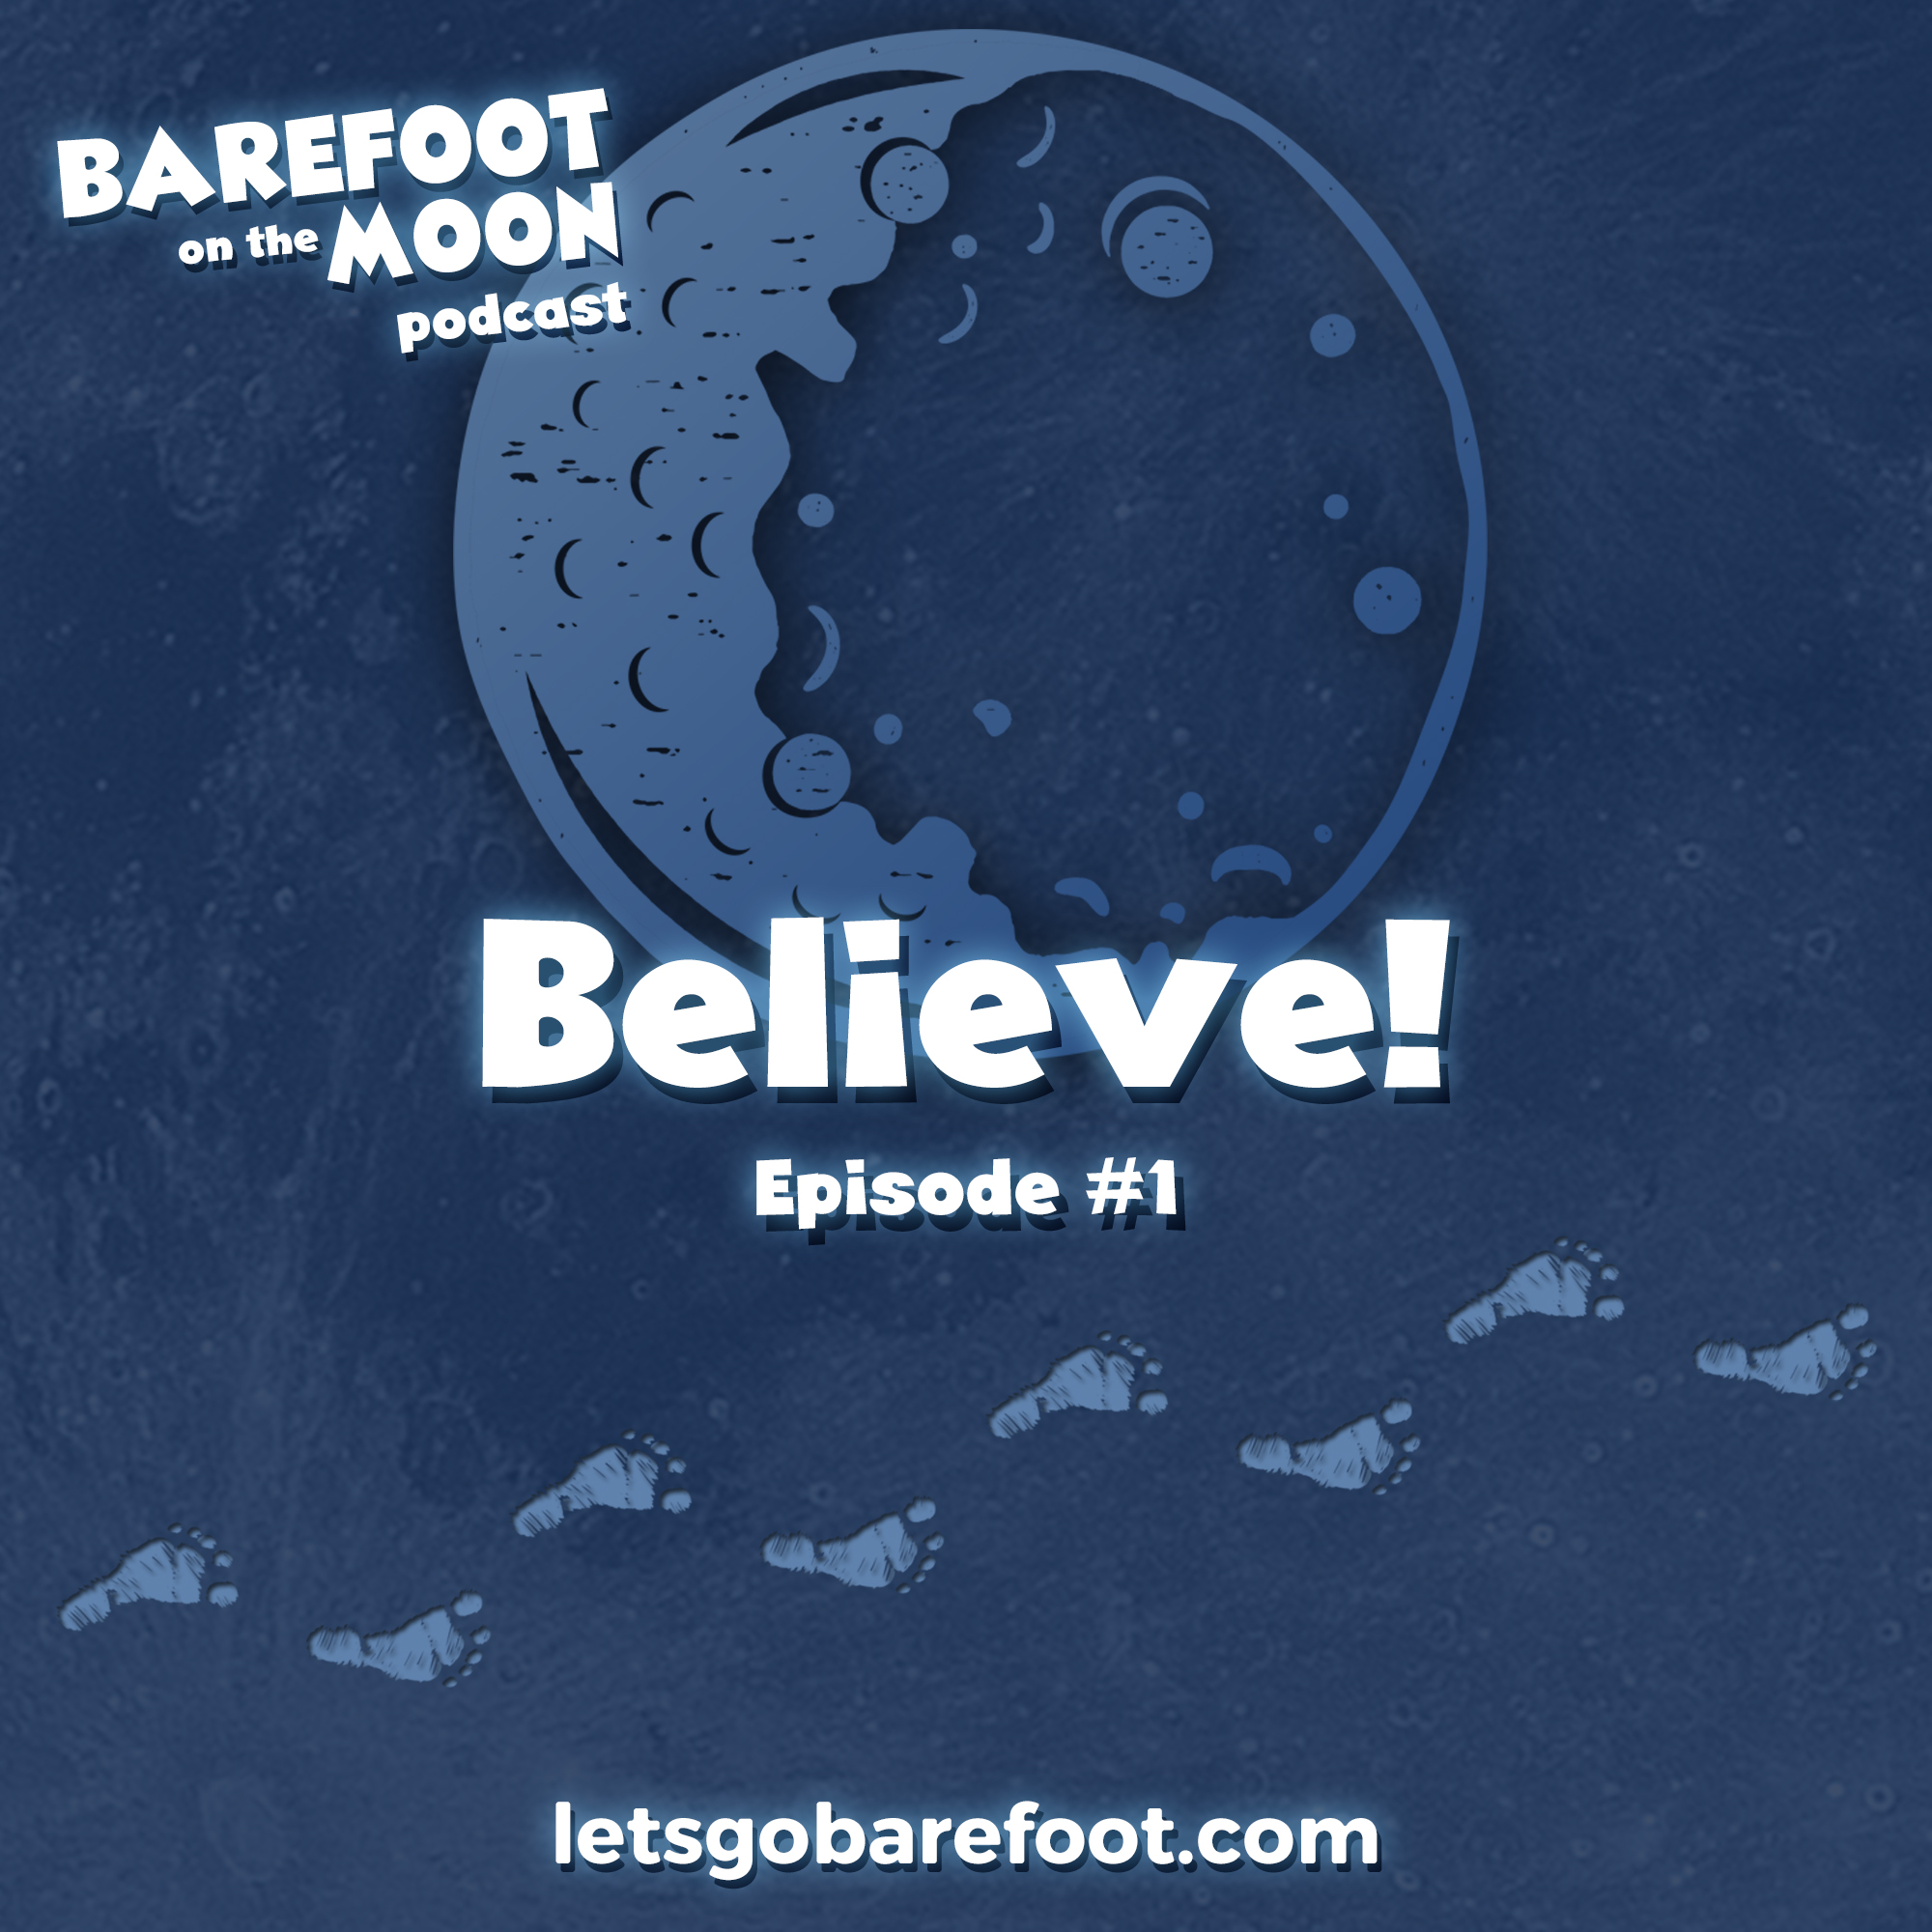 Official Episode #1: Believe!